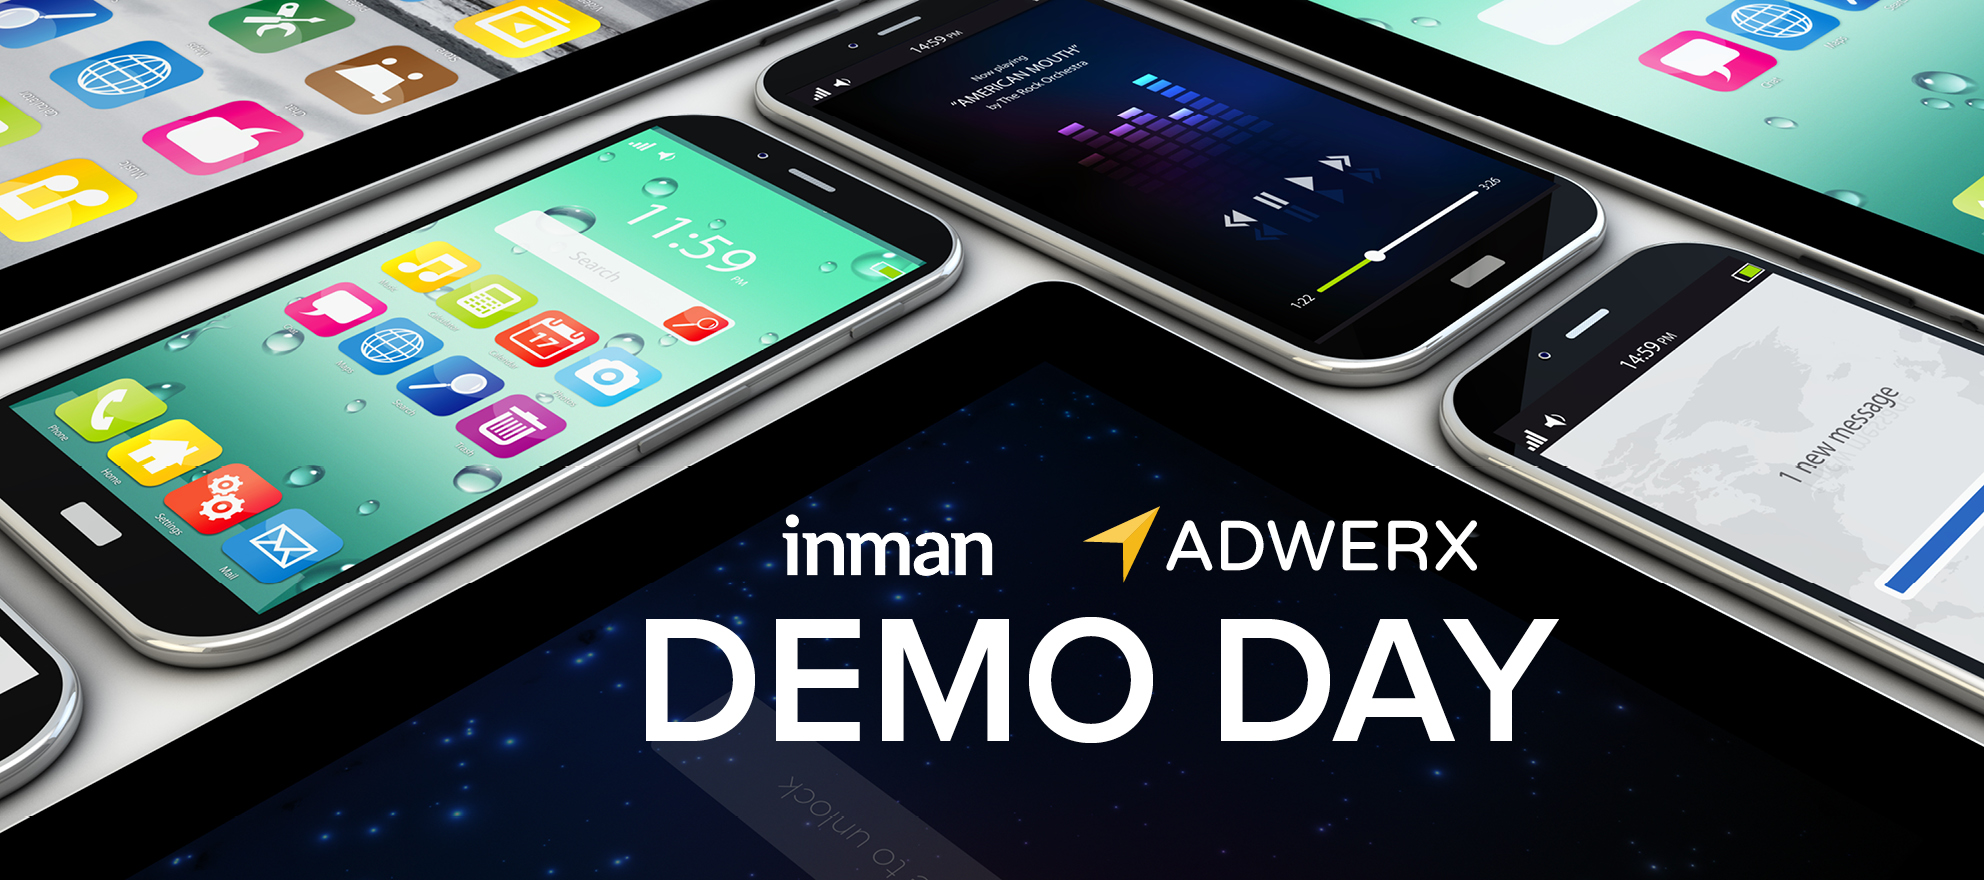 See how Adwerx mobile ads can build your brand